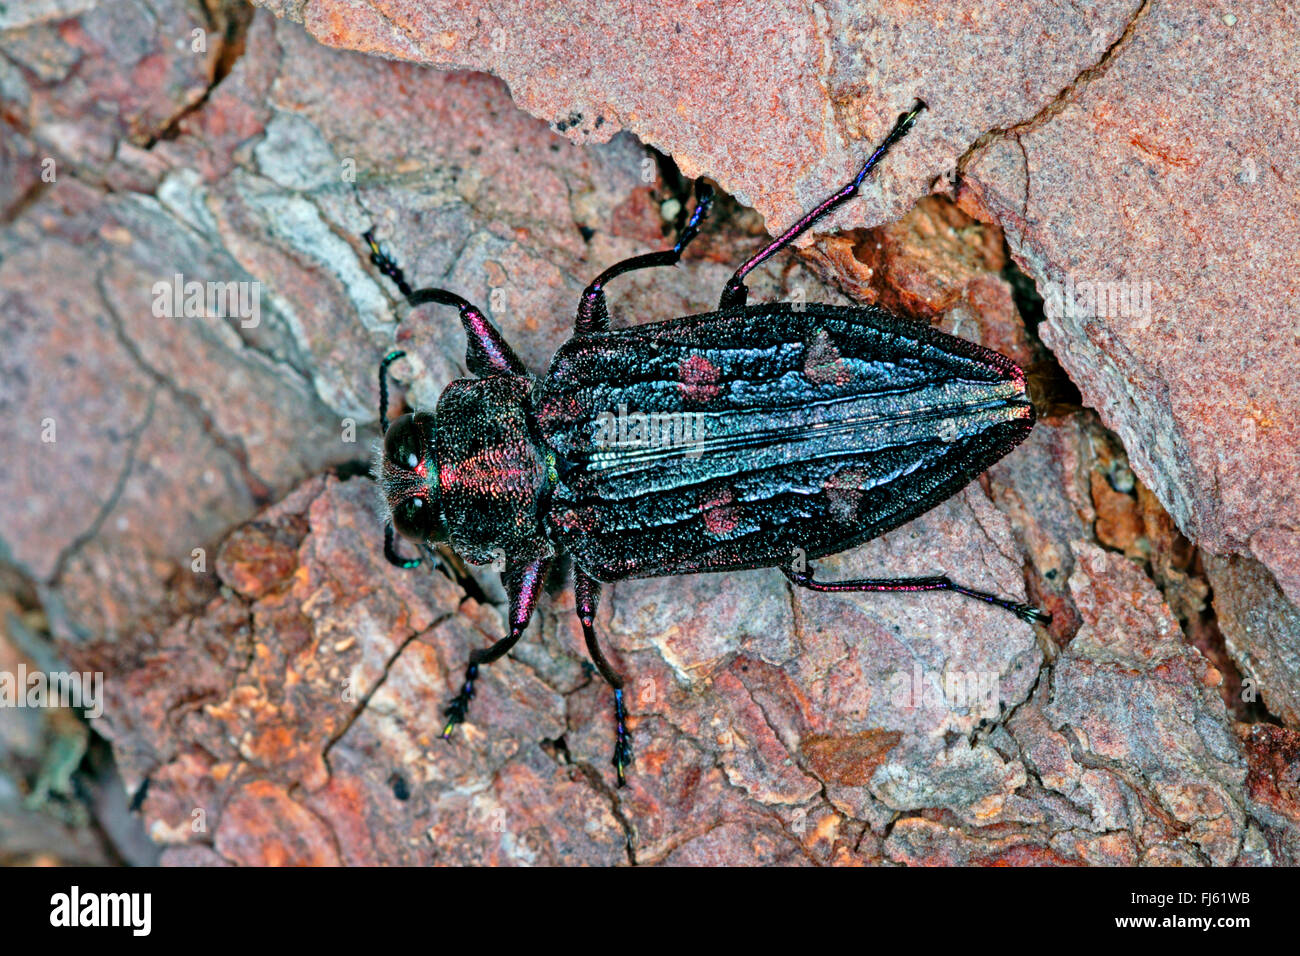 Flatheaded borer (Chrysobothris chrysostigma), on bark, Germany - Stock Image